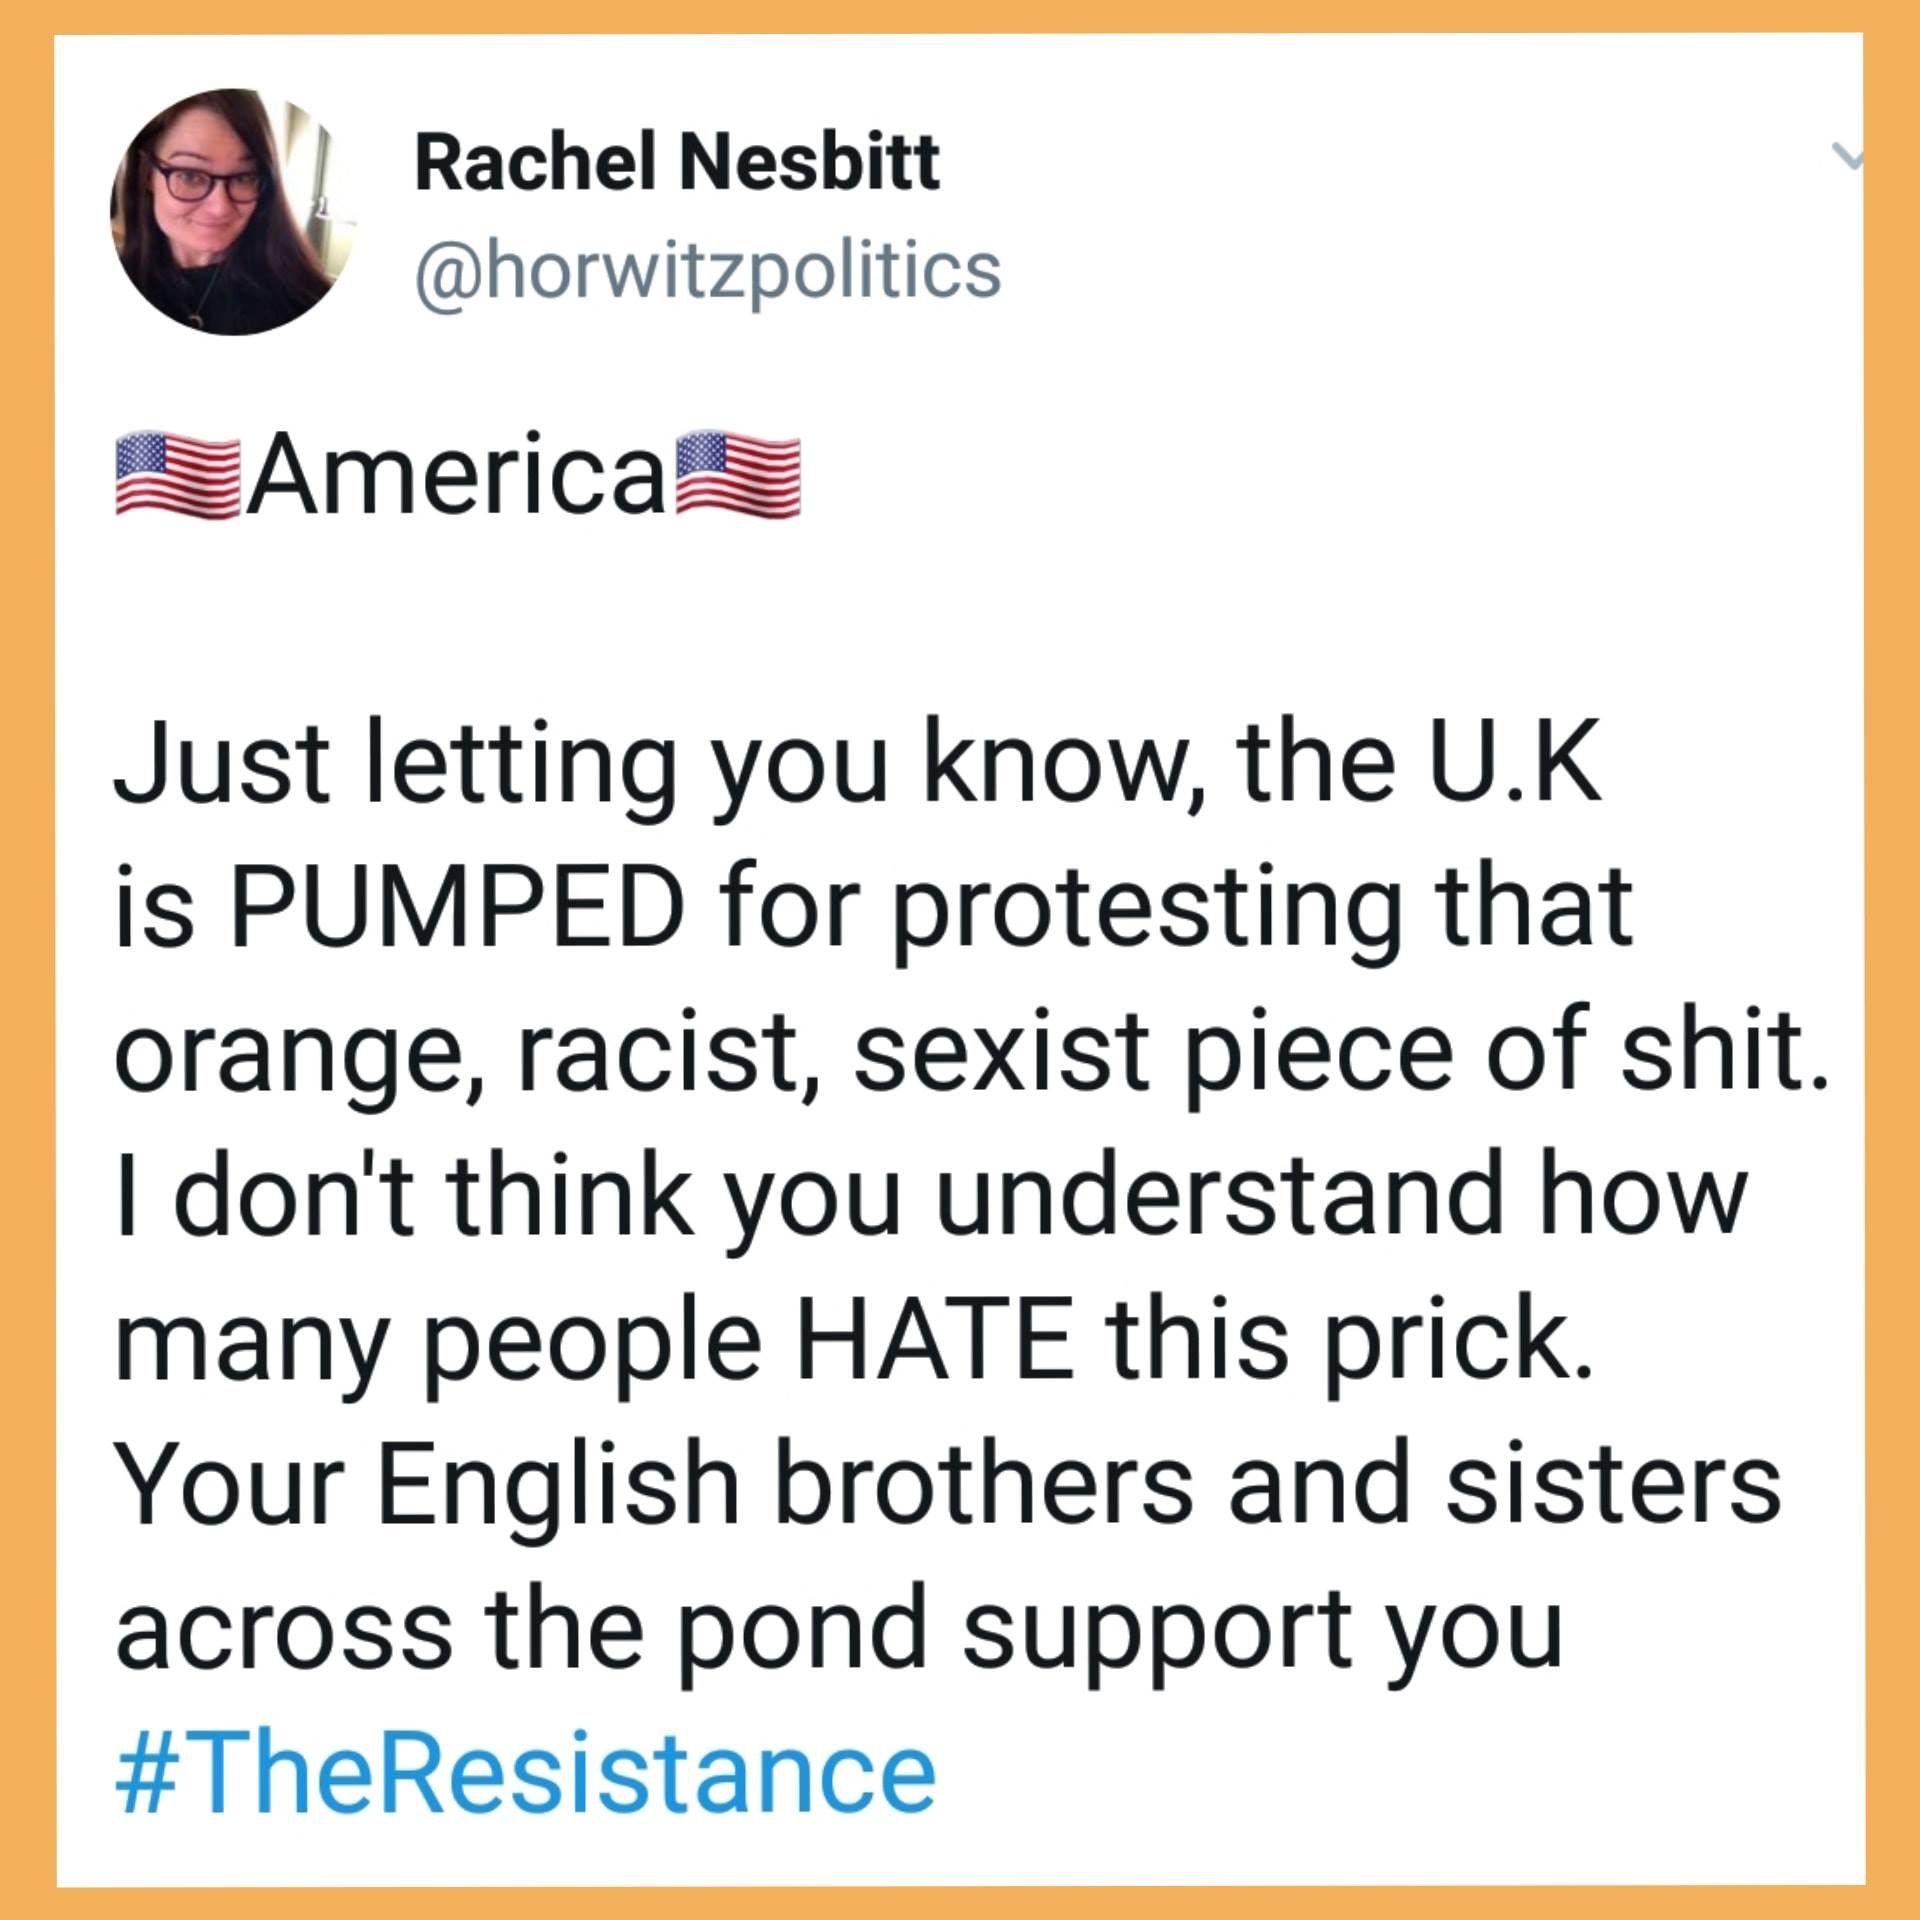 Thank you, Rachel. Most of America hates him also.